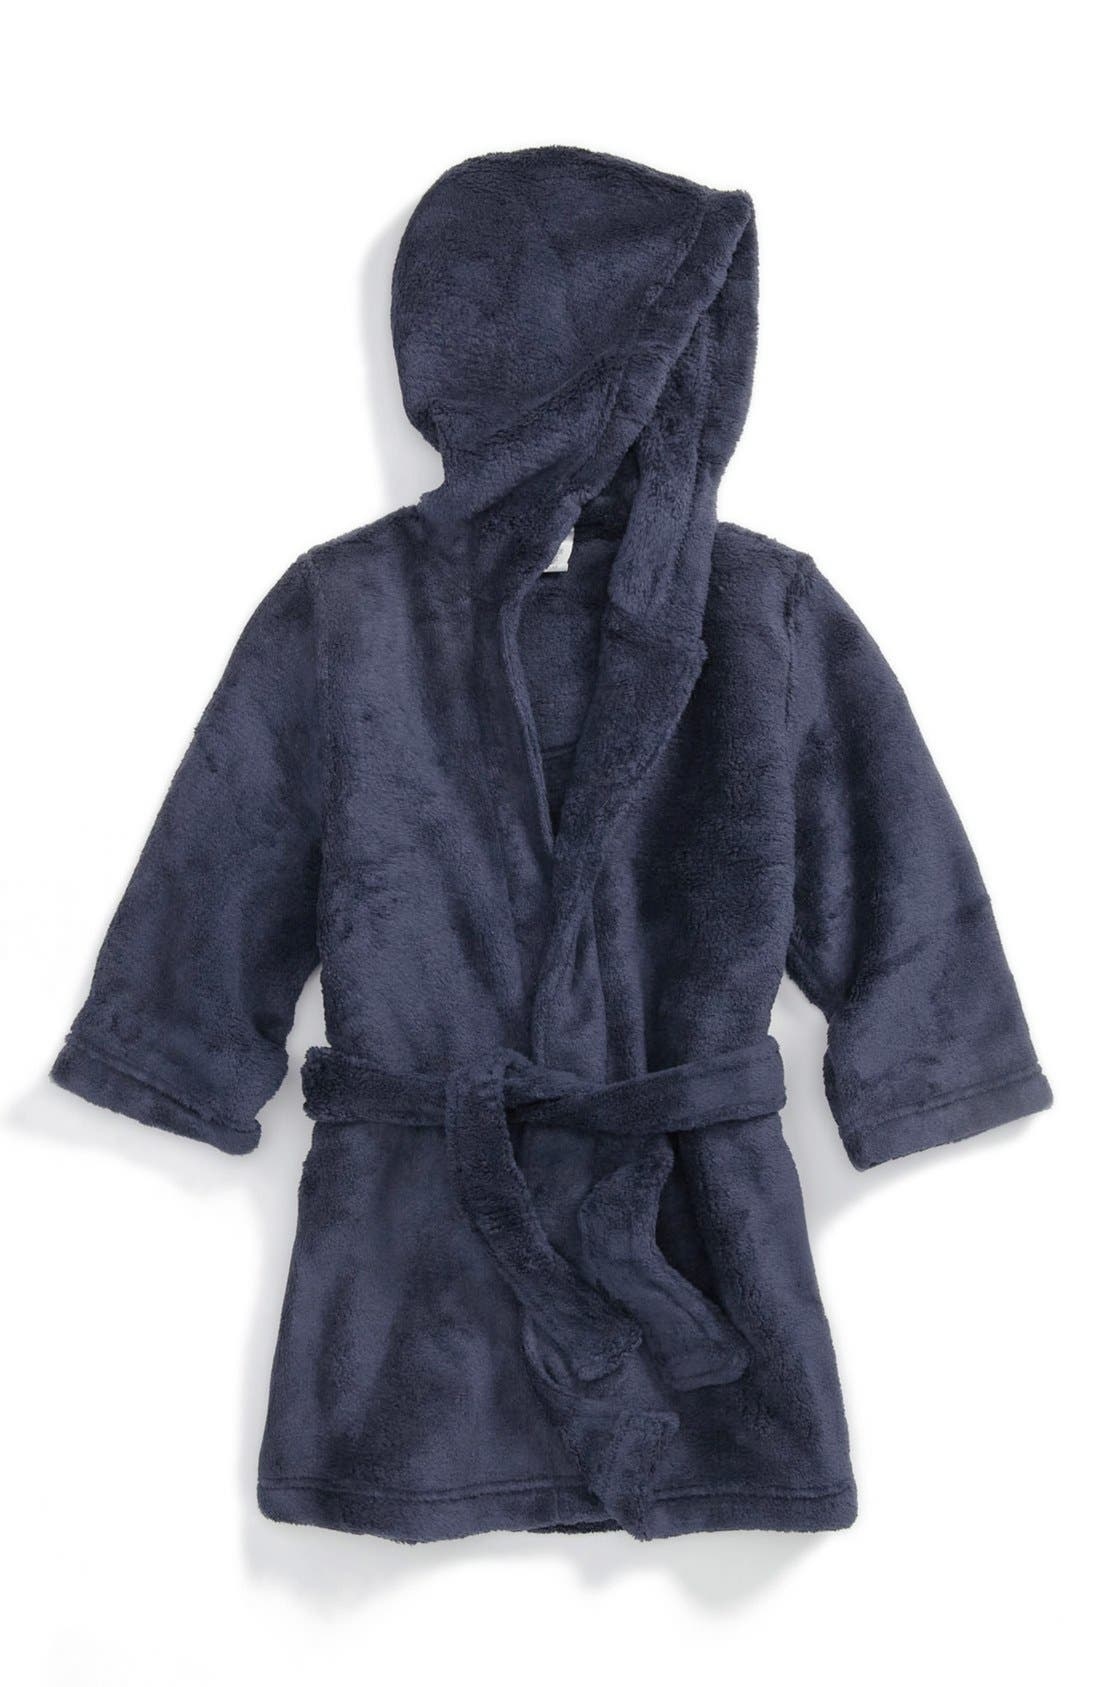 Alternate Image 1 Selected - Tucker + Tate Terry Hooded Robe (Toddler)